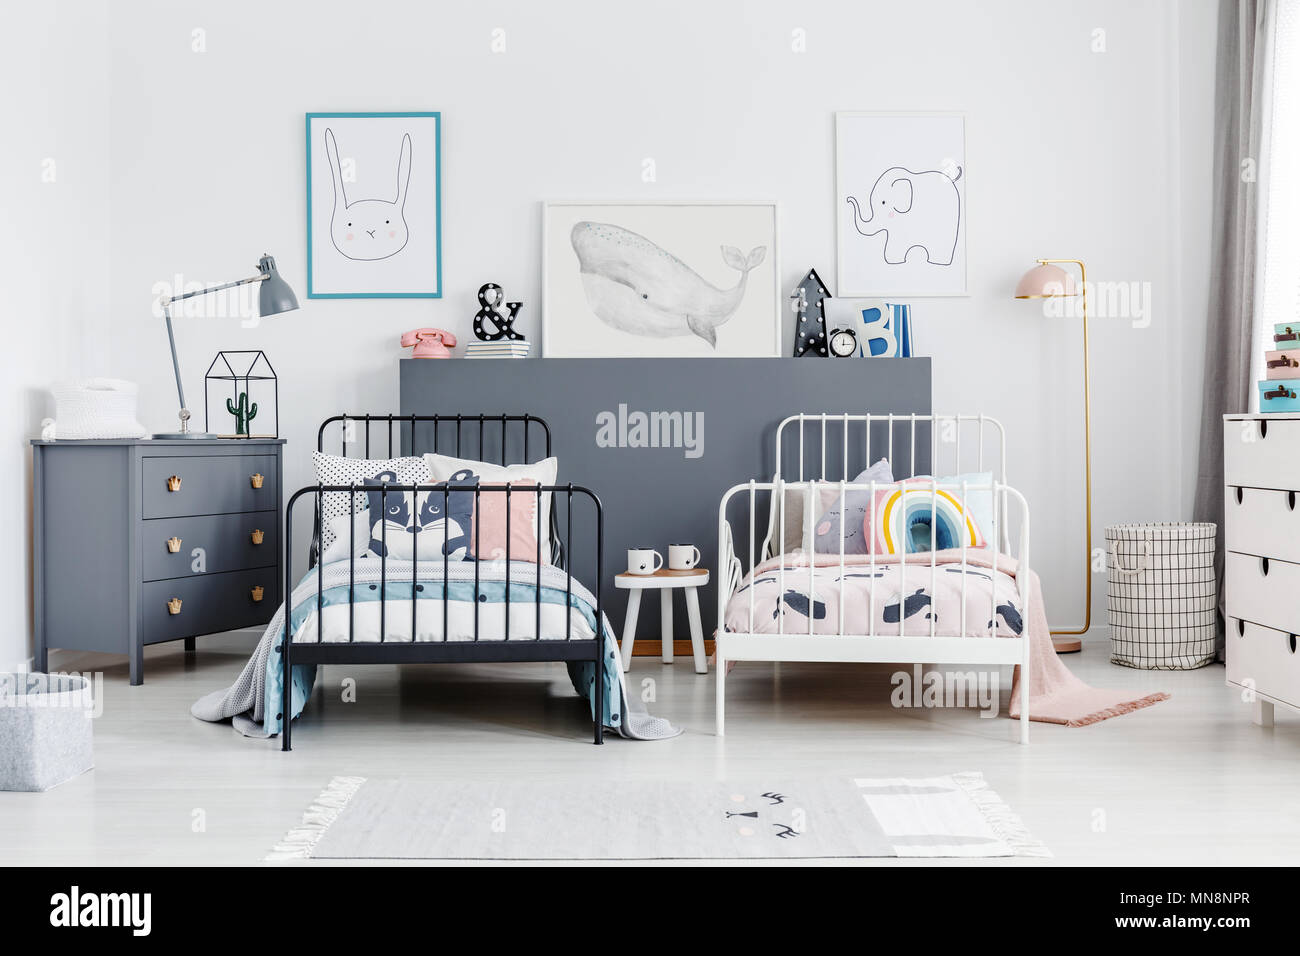 Black And White Beds In Colorful Kids Bedroom Interior With Posters And Lamp On Cabinet Real Photo Stock Photo Alamy